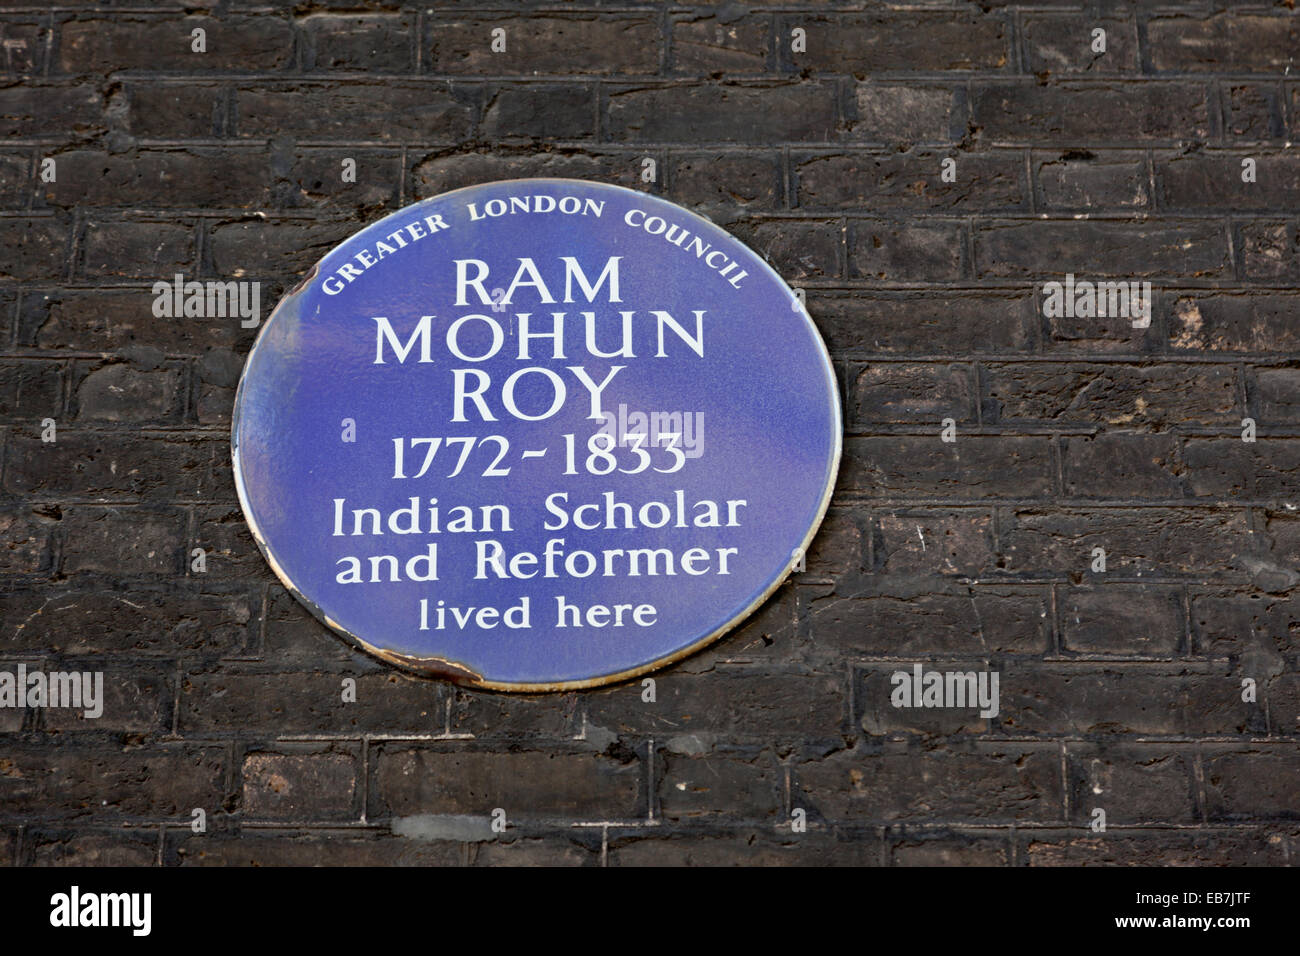 Ram Mohum Roy Indian Scholar and reformer, Blue Plaque by Greater London Council. - Stock Image